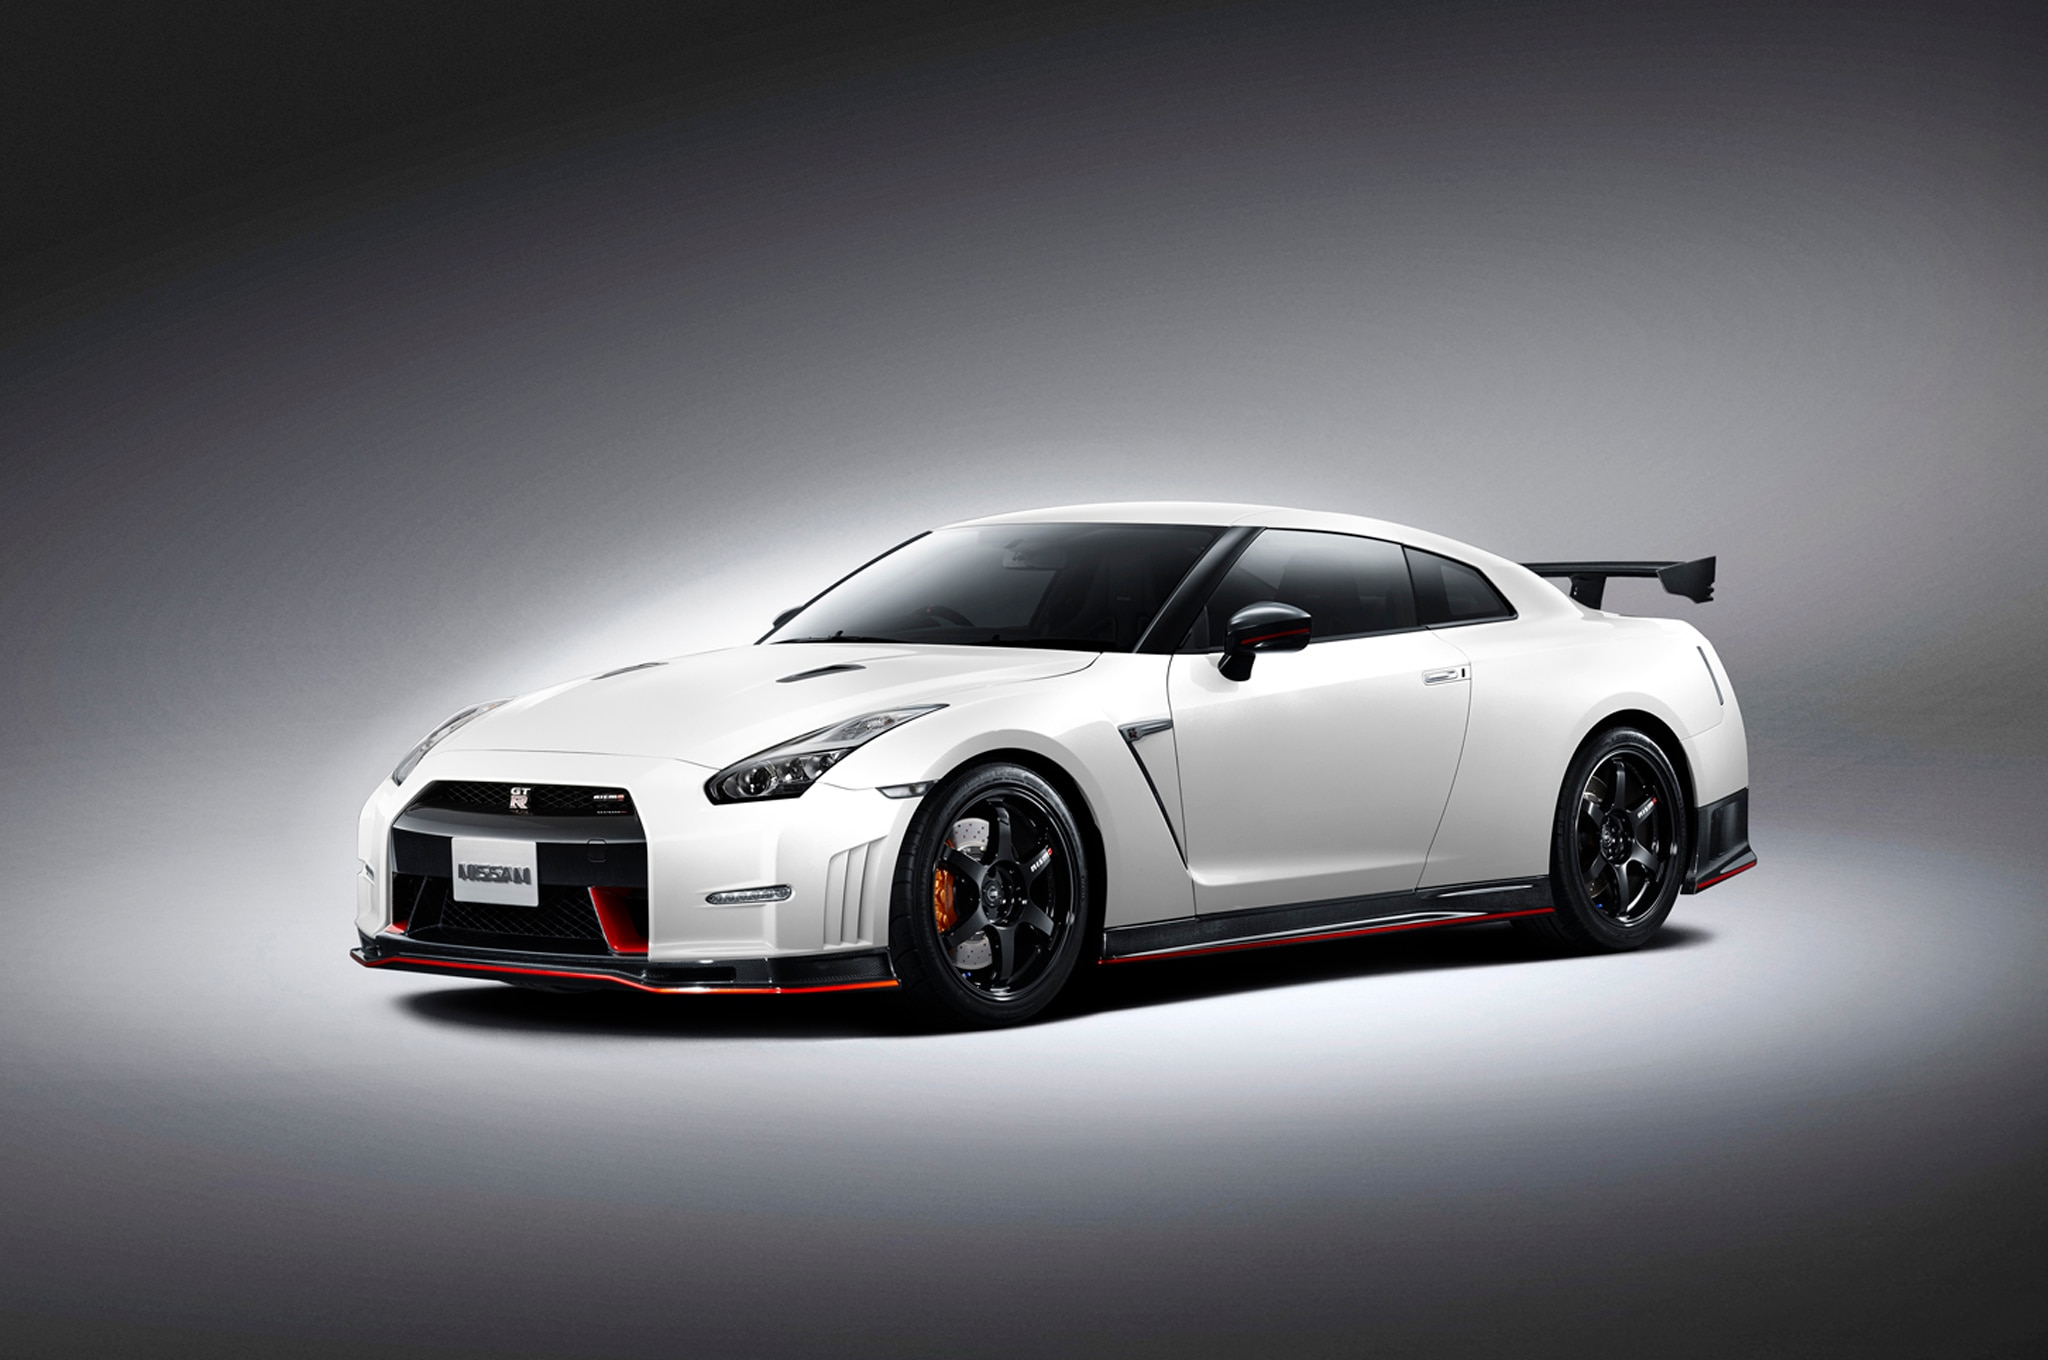 2015 nissan gt r nismo priced at 151 585 automobile. Black Bedroom Furniture Sets. Home Design Ideas